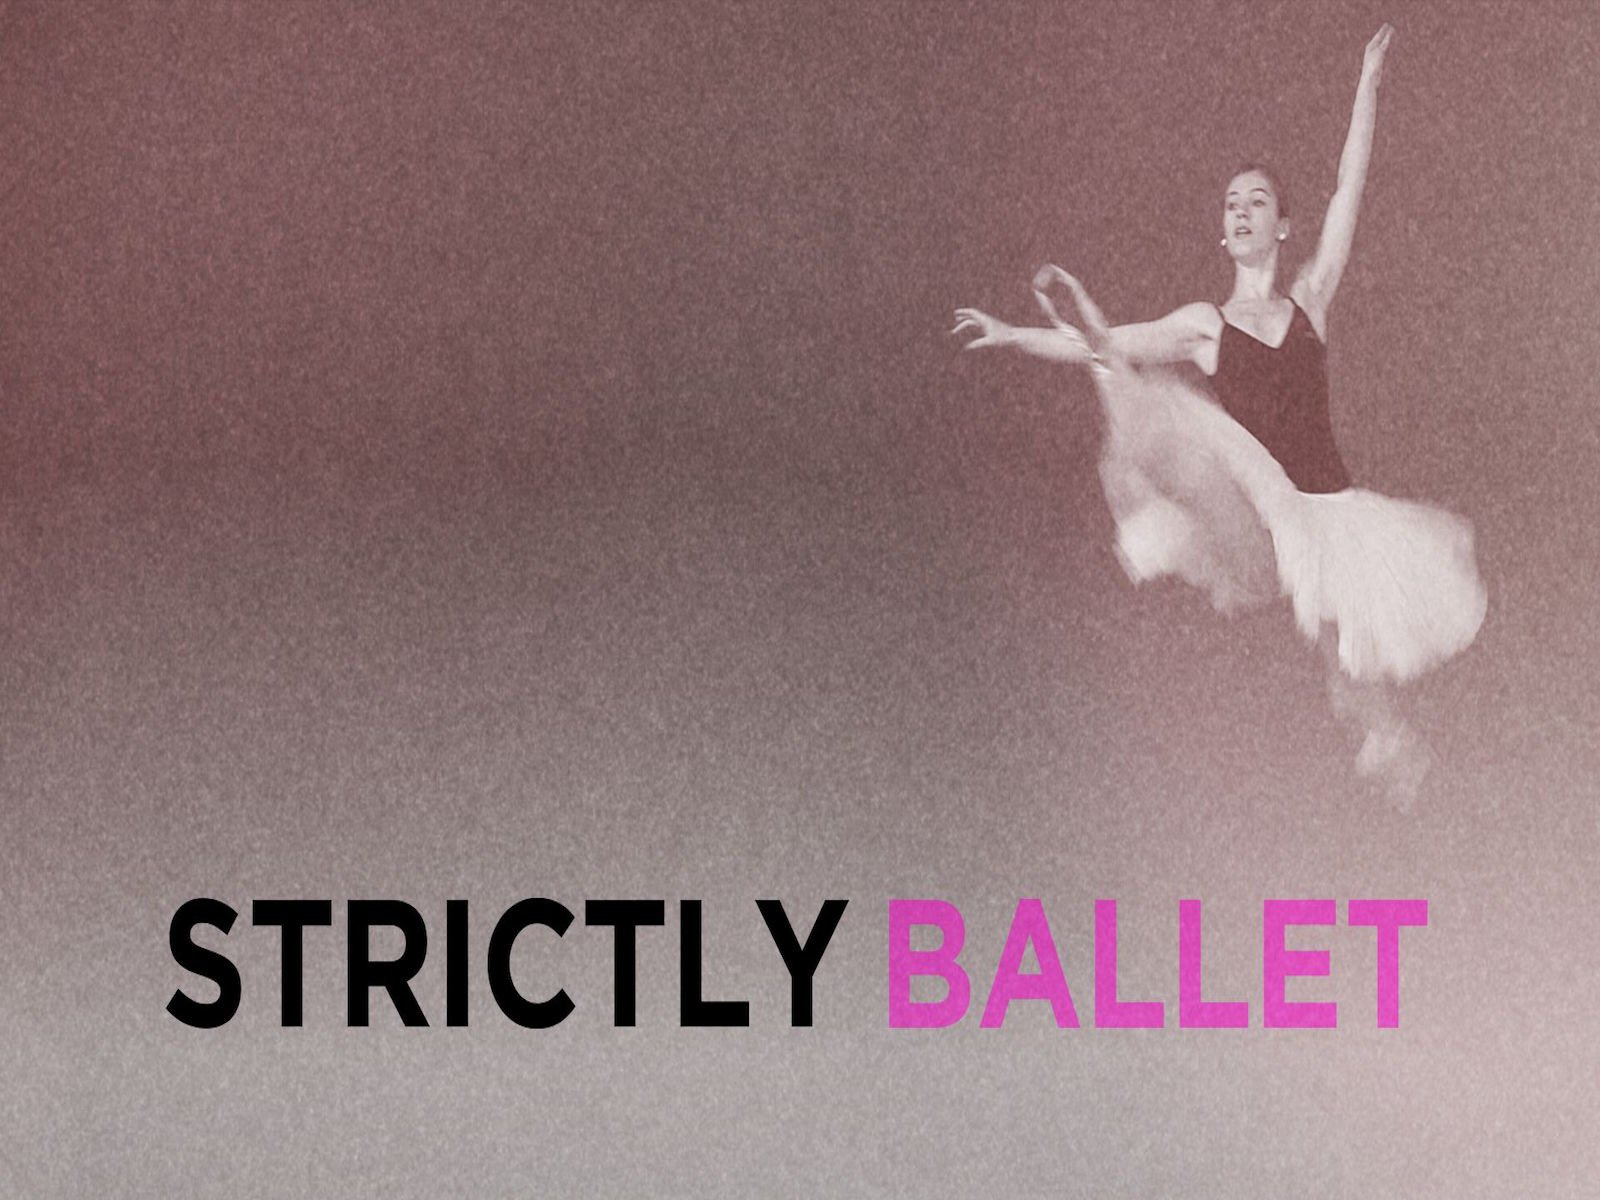 Clip: Strictly Ballet